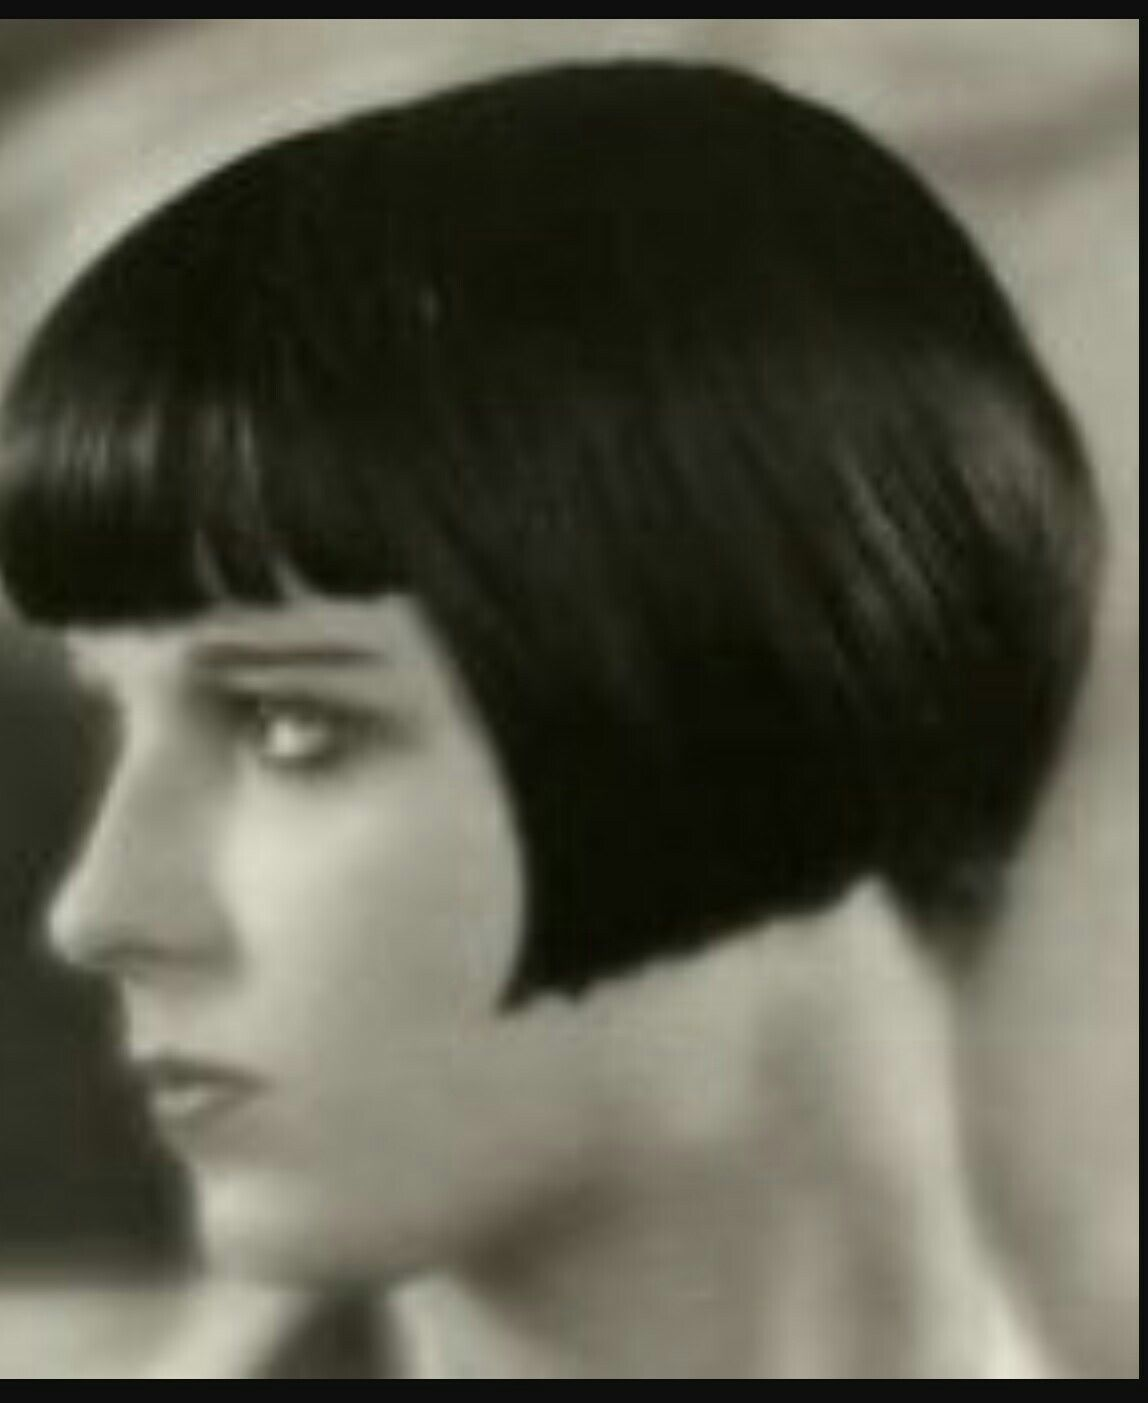 The Dutch Boy Haircut Was A Like The Bob In Which Women Used It To Appear More Masculine This Was An Era Where Short 1920s Hair Cool Hairstyles Boy Hairstyles